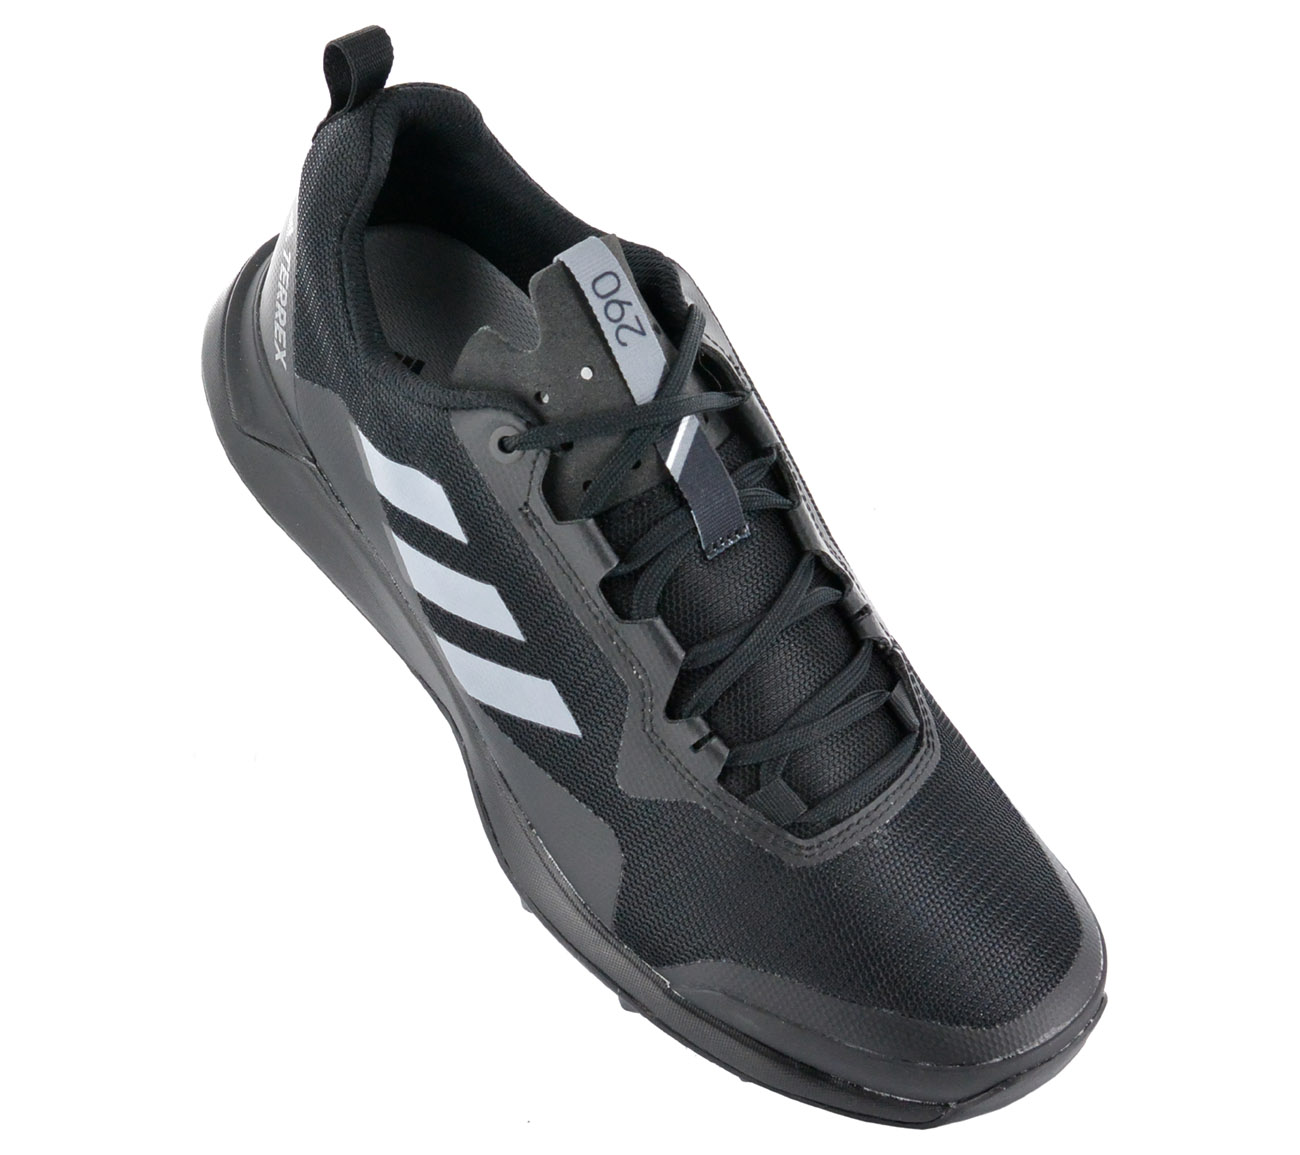 brand new af9e9 9572c NEW adidas Terrex CMTK S80873 Mens Shoes Trainers Sneakers SALE